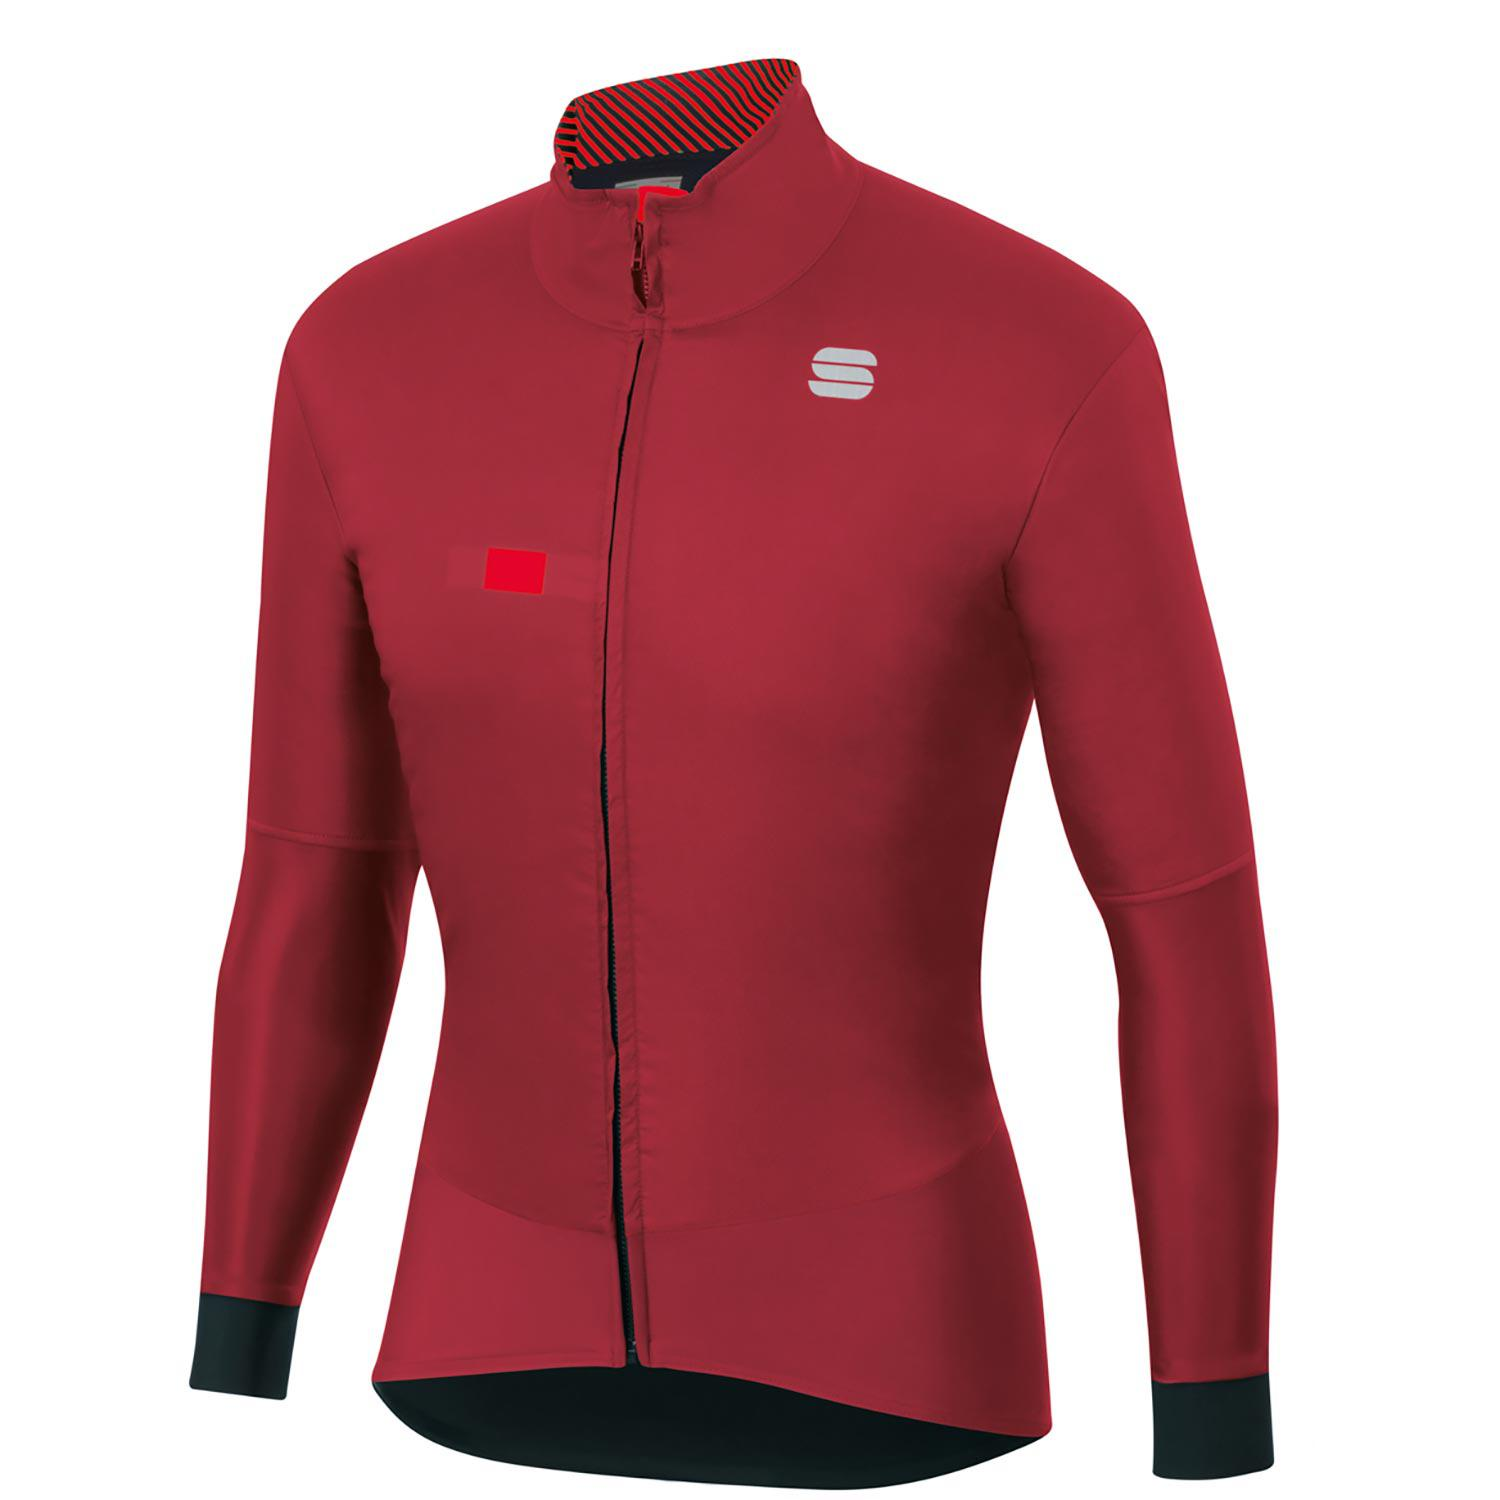 Sportful-Sportful BodyFit Pro Jacket-Red Rumba/Red-S-SF205016222-saddleback-elite-performance-cycling